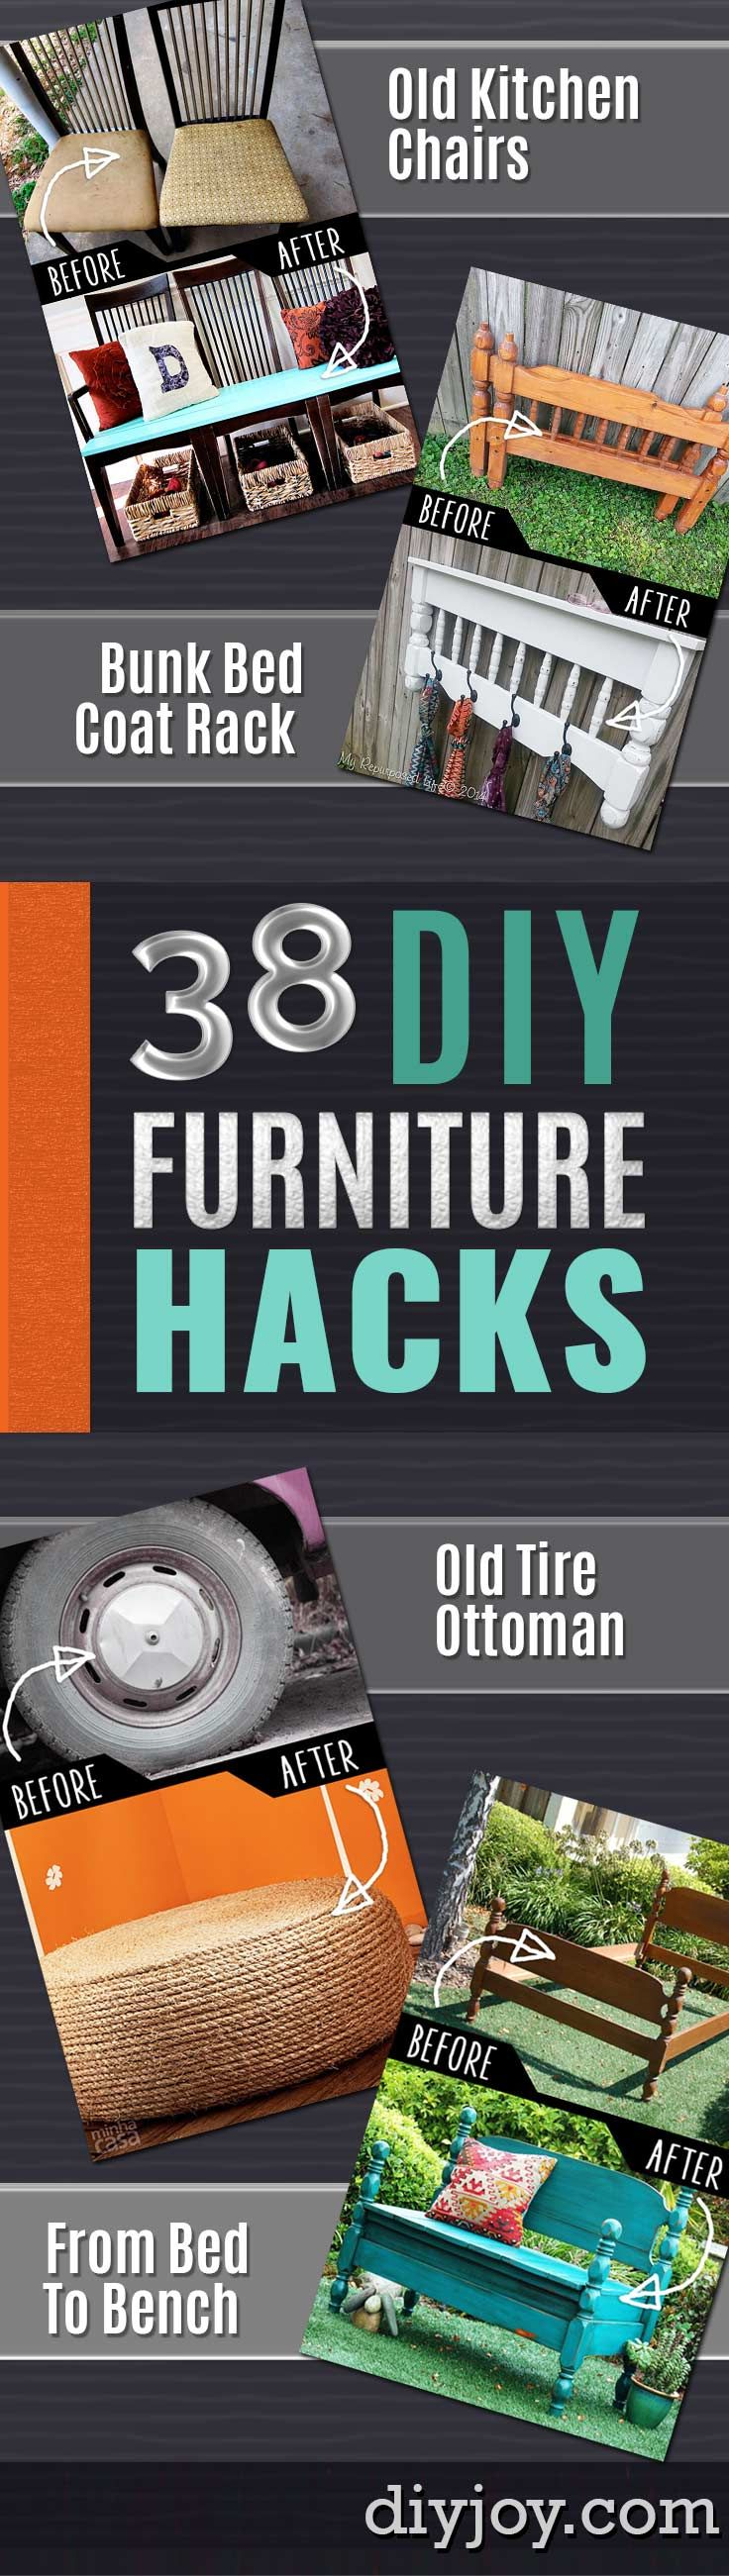 DIY Furniture Hacks | Cool Ideas for Creative Do It Yourself Furniture Made From Things You Might Not Expect | Repurpose and Upcycling Ideas for Home Decor, Bedroom, Bath and Patio http://diyjoy.com/diy-furniture-hacks